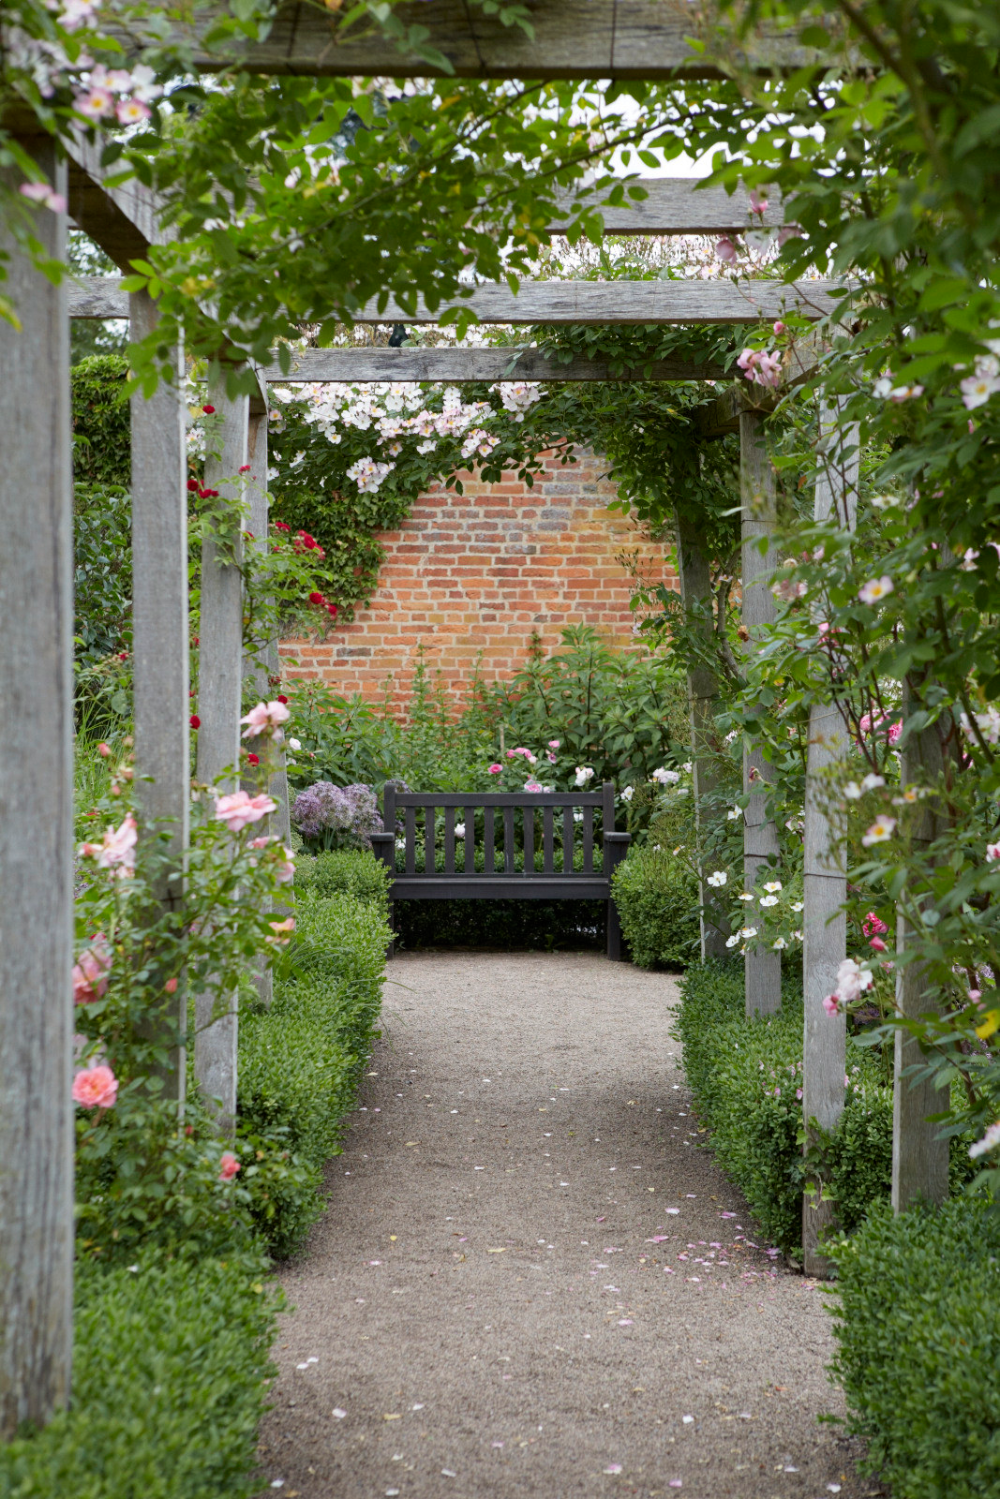 Ideas to Steal 10 Ways English Gardens Borrow from France is part of Rustic pergola, English garden, Garden design, Patio garden, Pergola, Pergola designs - Join us for a tour of a classic English garden at Hampton Court Castle to see 10 ideas borrowed the French (abd steal them for your garden too)